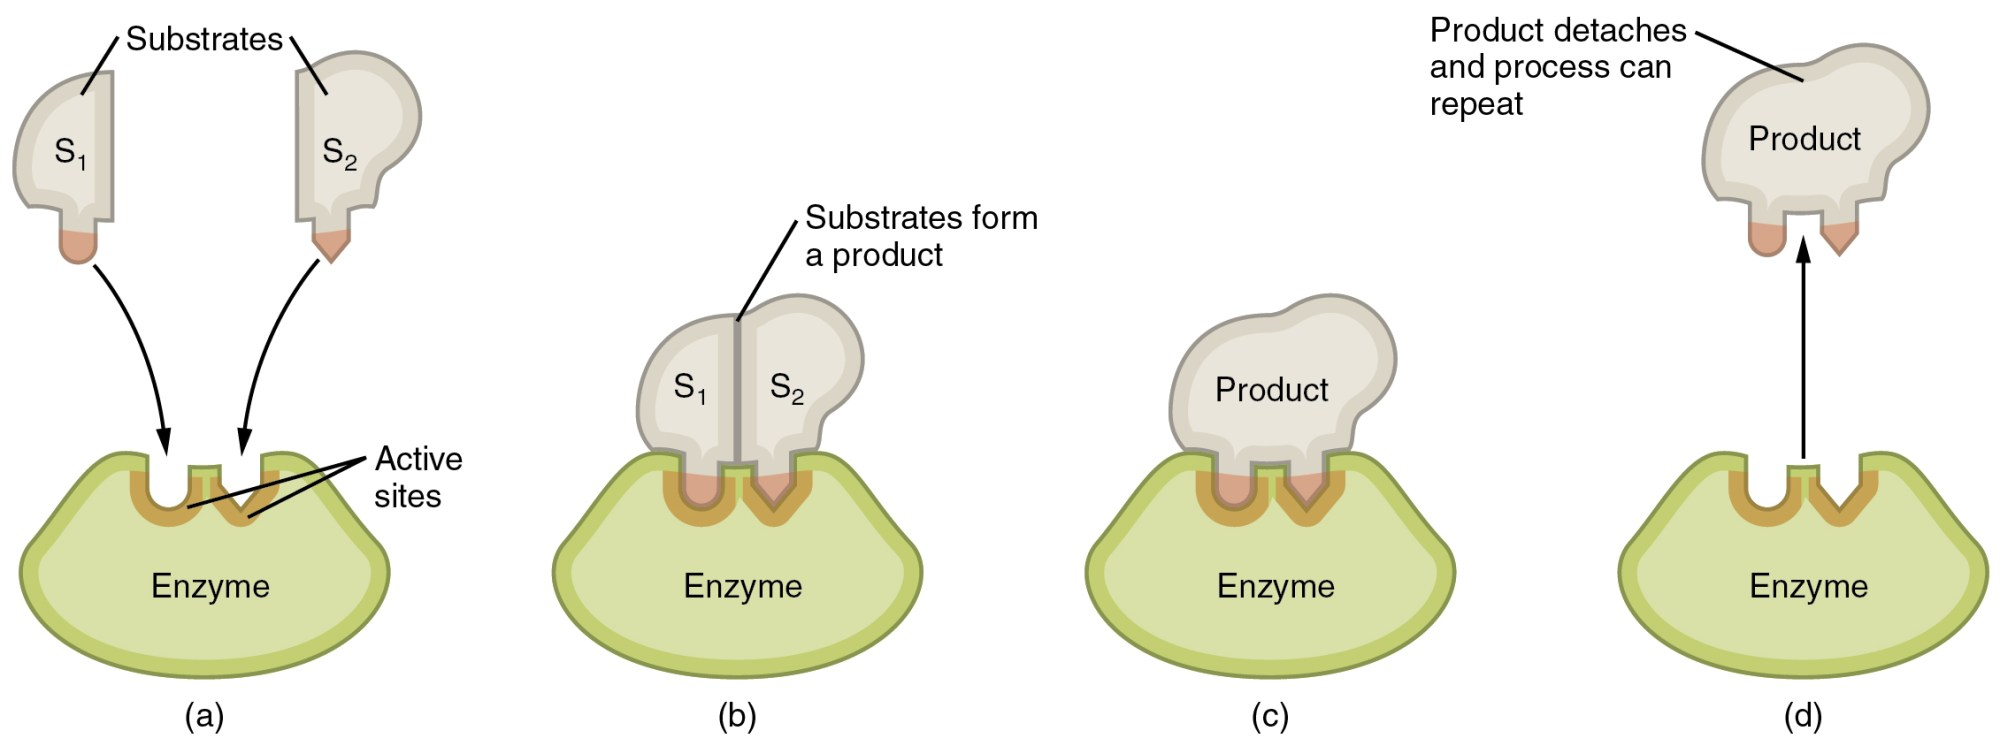 hight resolution of this image shows the steps in which an enzyme can act the substrate is shown